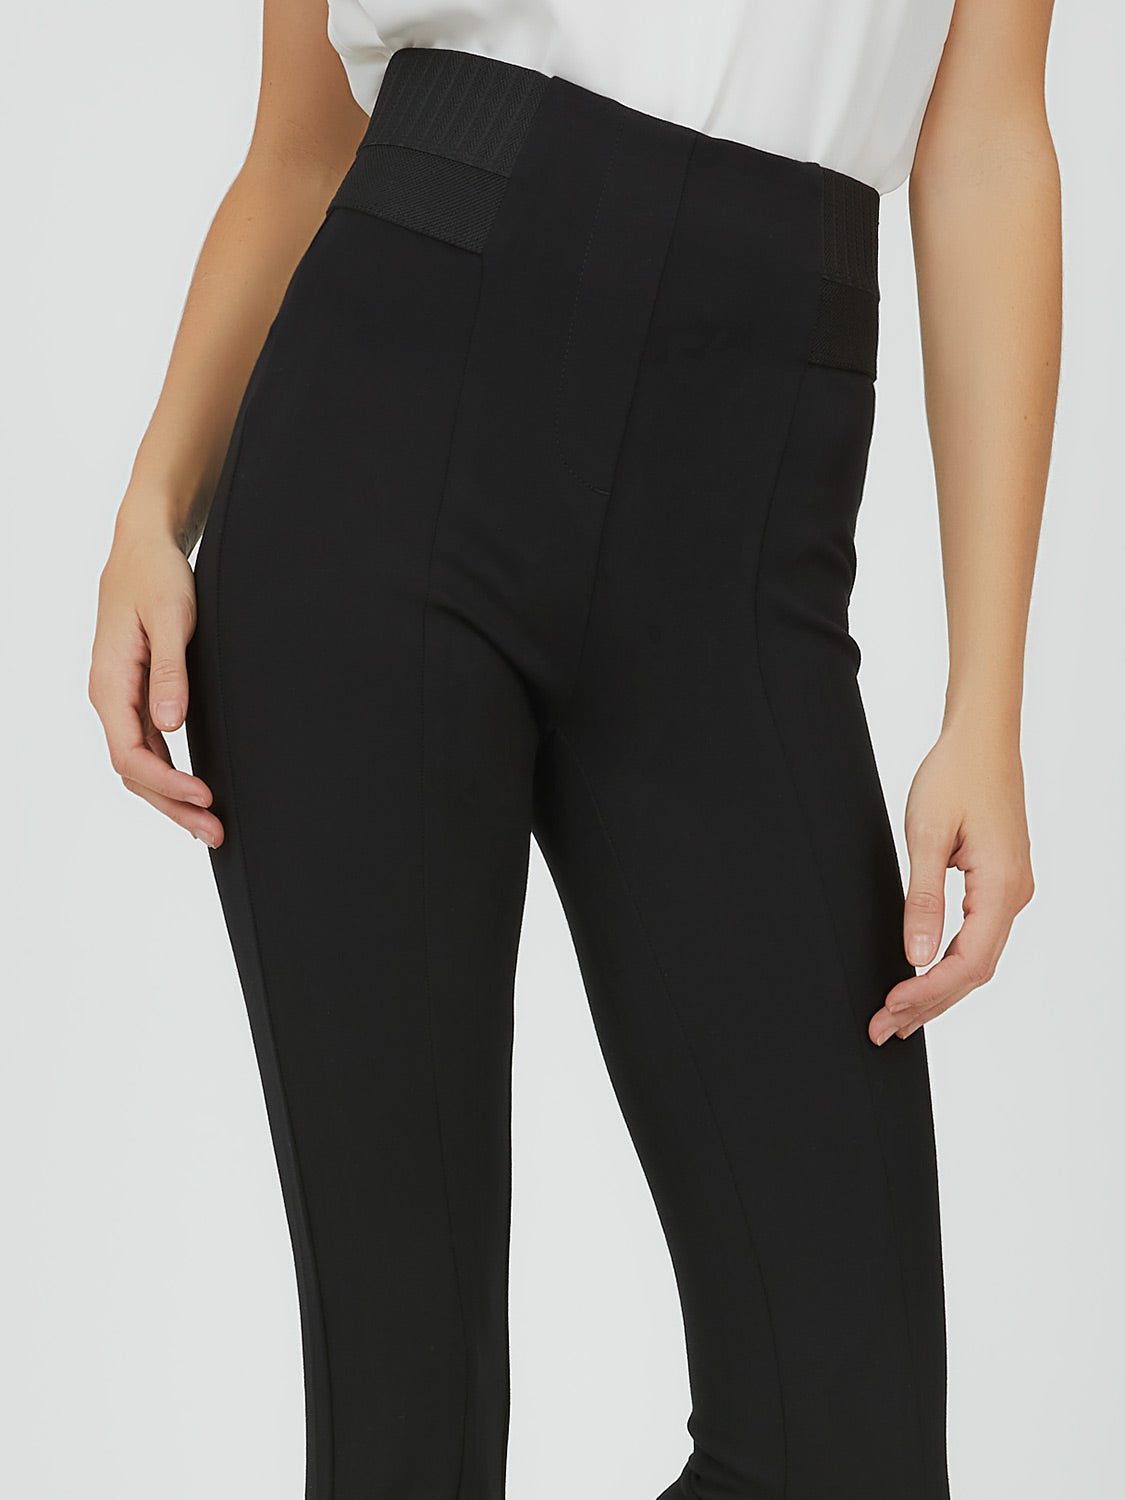 Pull-On Skinny Knit Pant